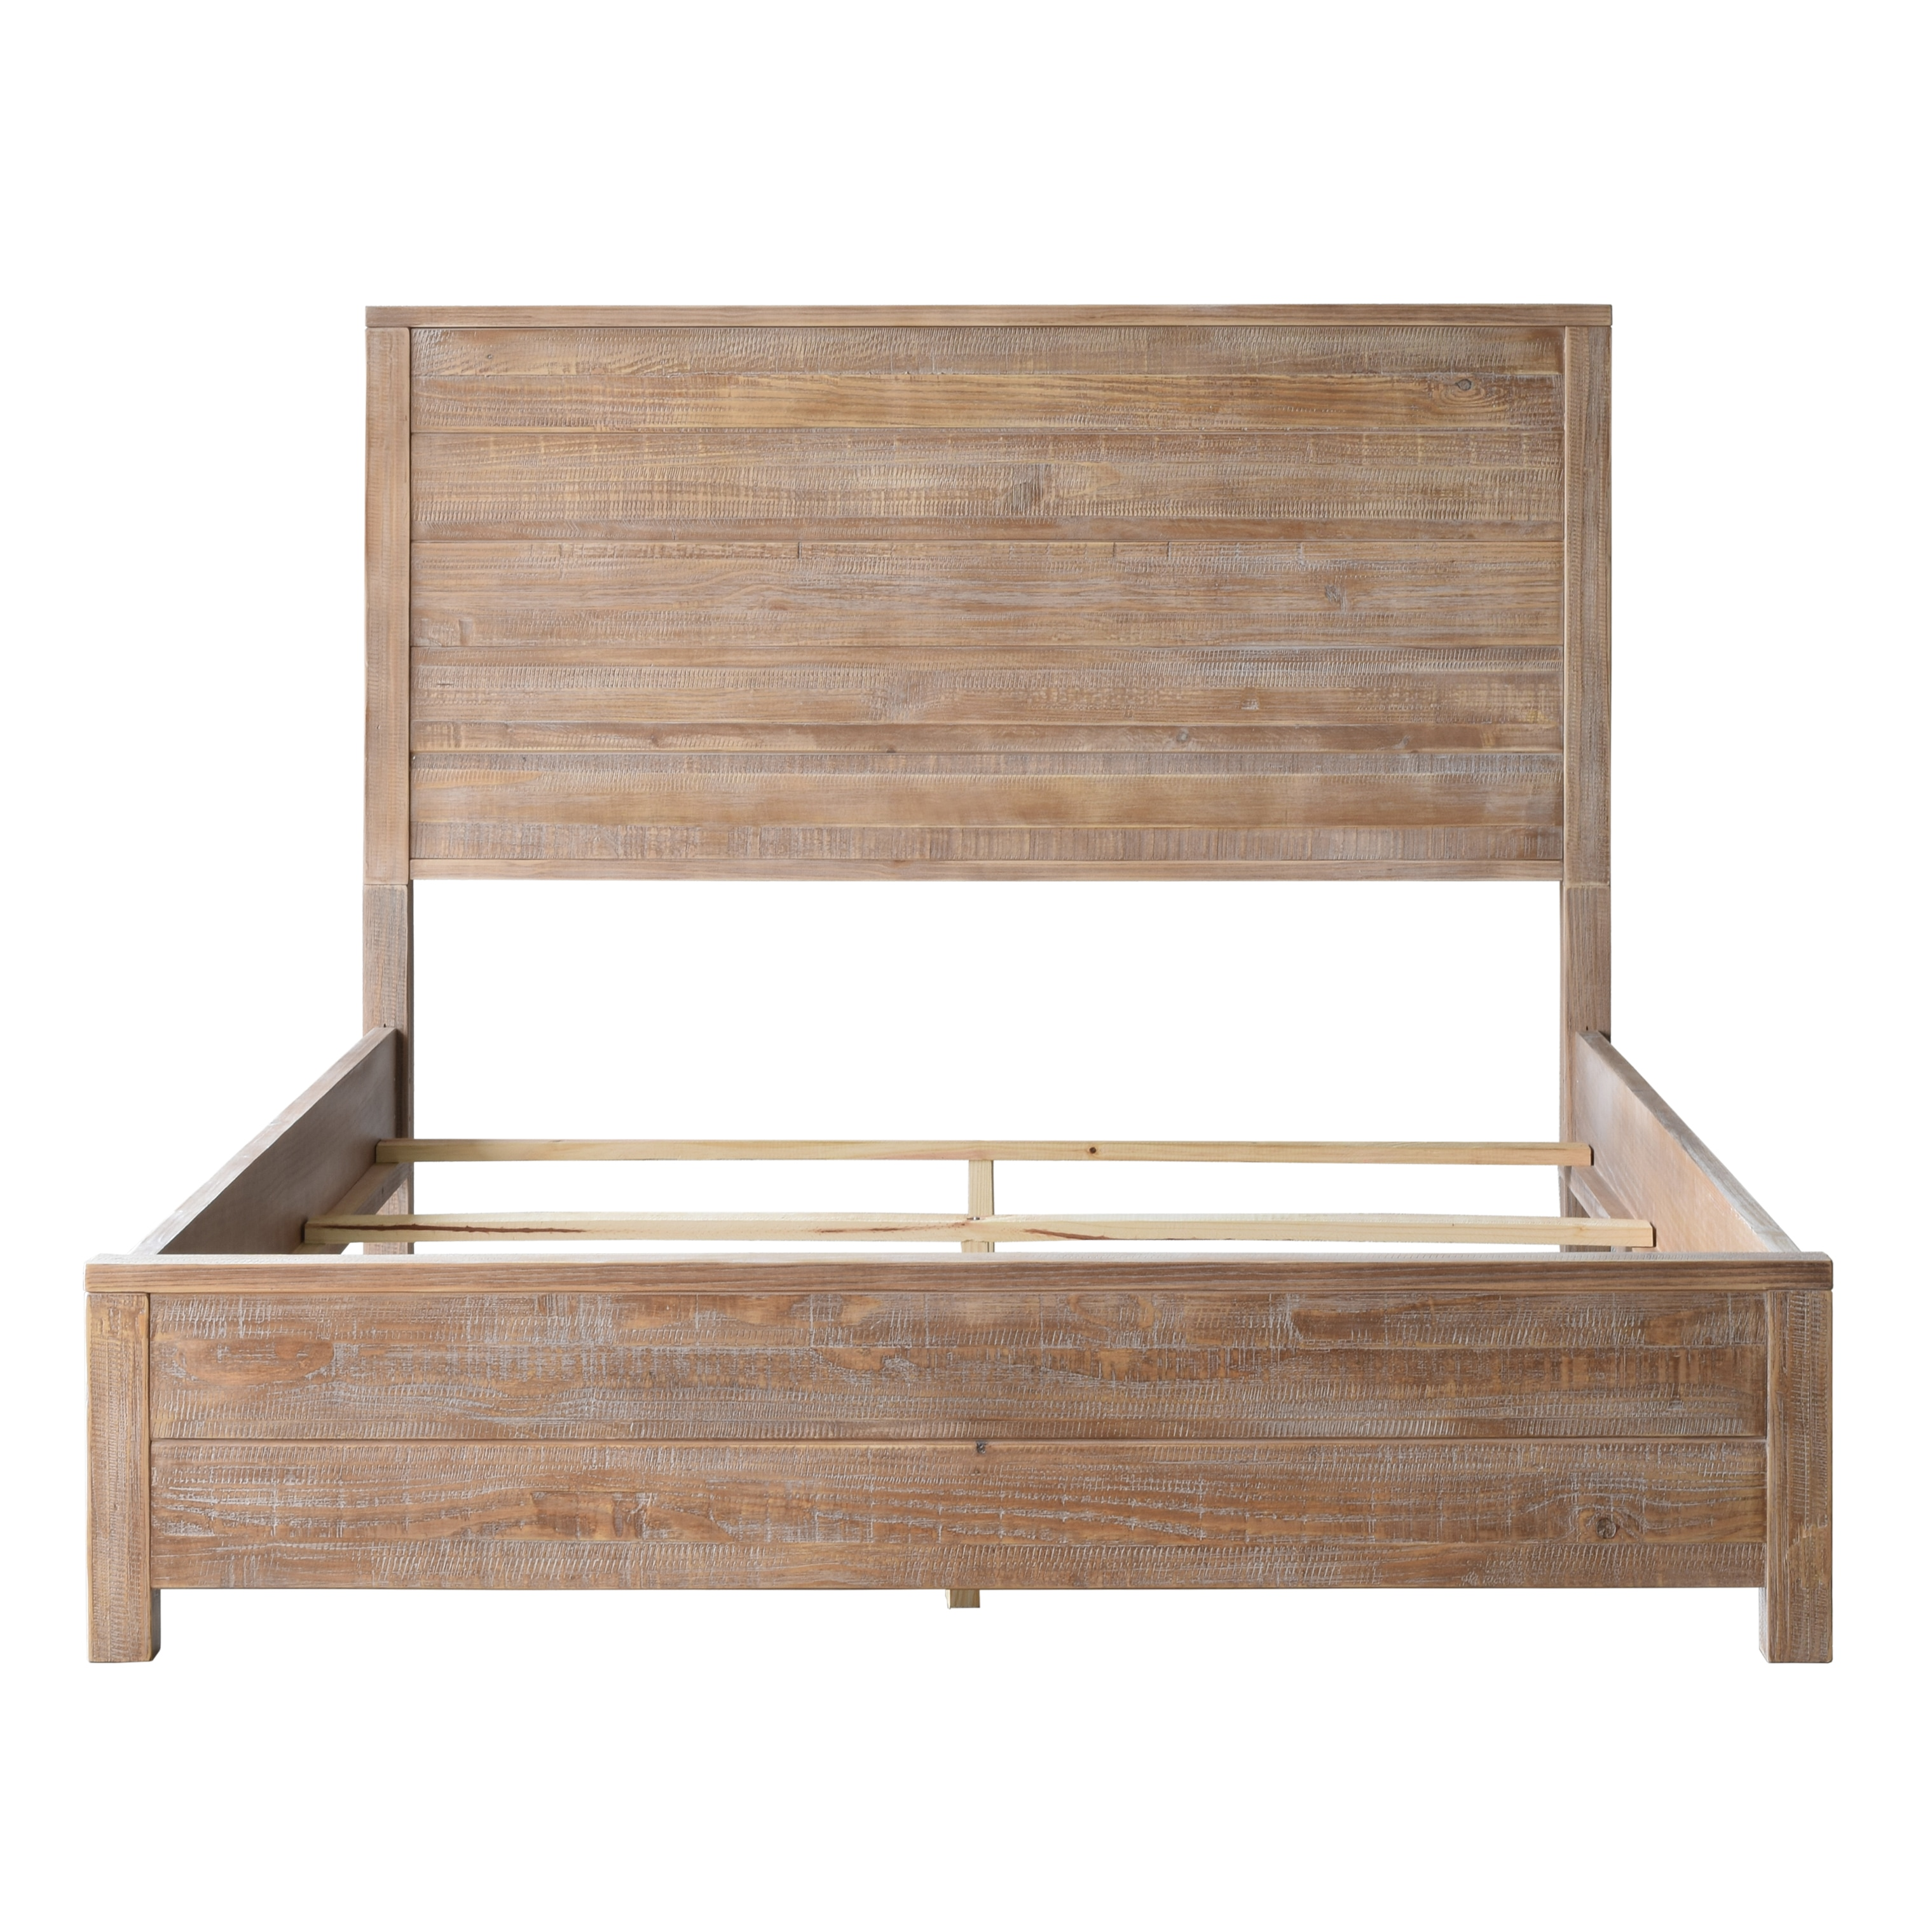 Shop Grain Wood Furniture Montauk King Solid Wood Panel Bed - Free ...